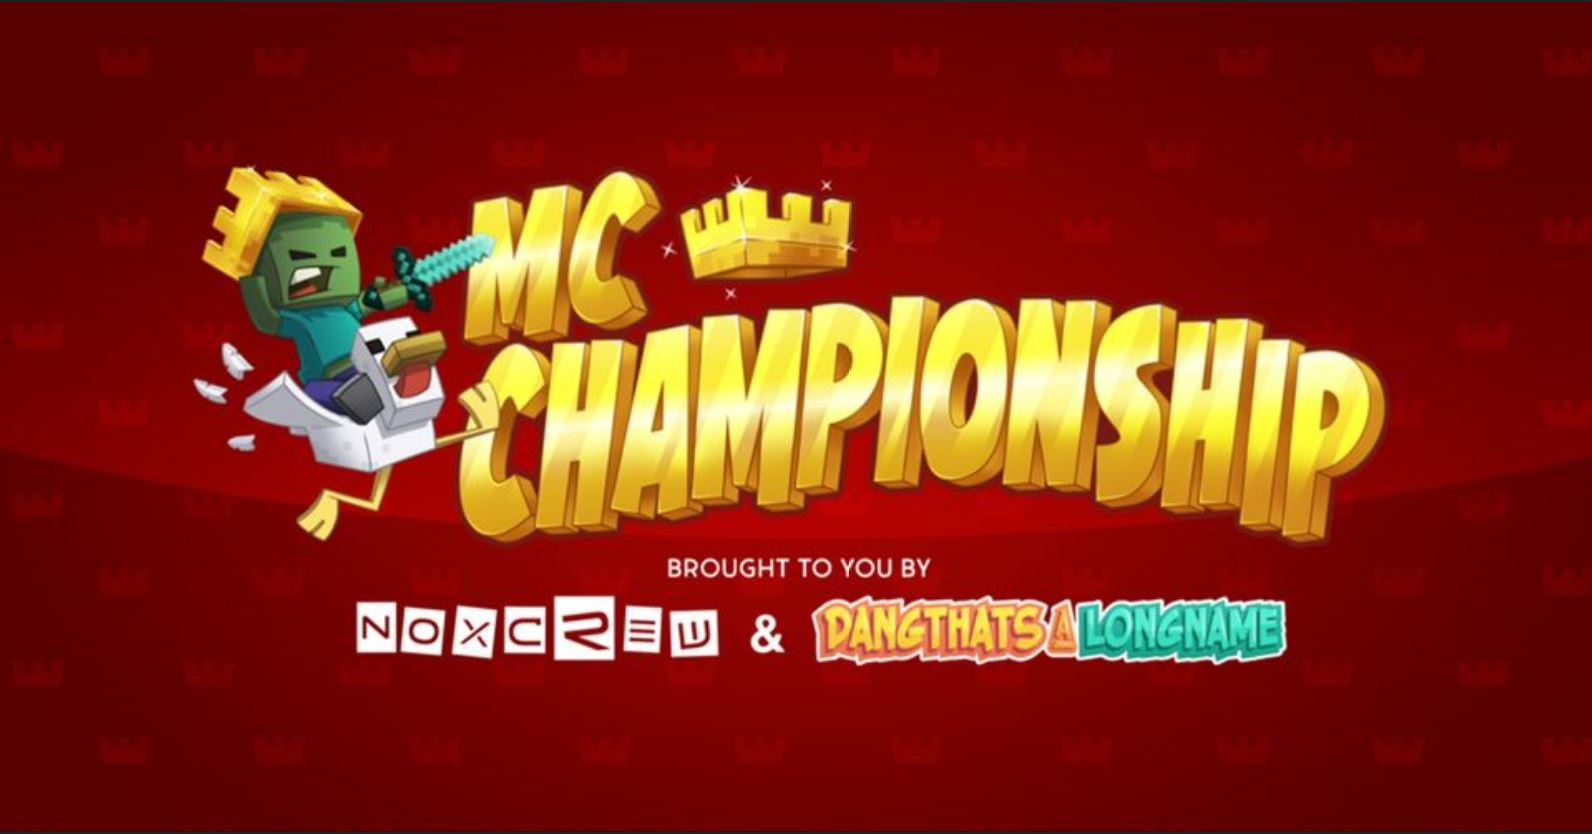 Ninth Minecraft Championship Draws In Up To 500,000 Through Both YouTube And Twitch Streams!